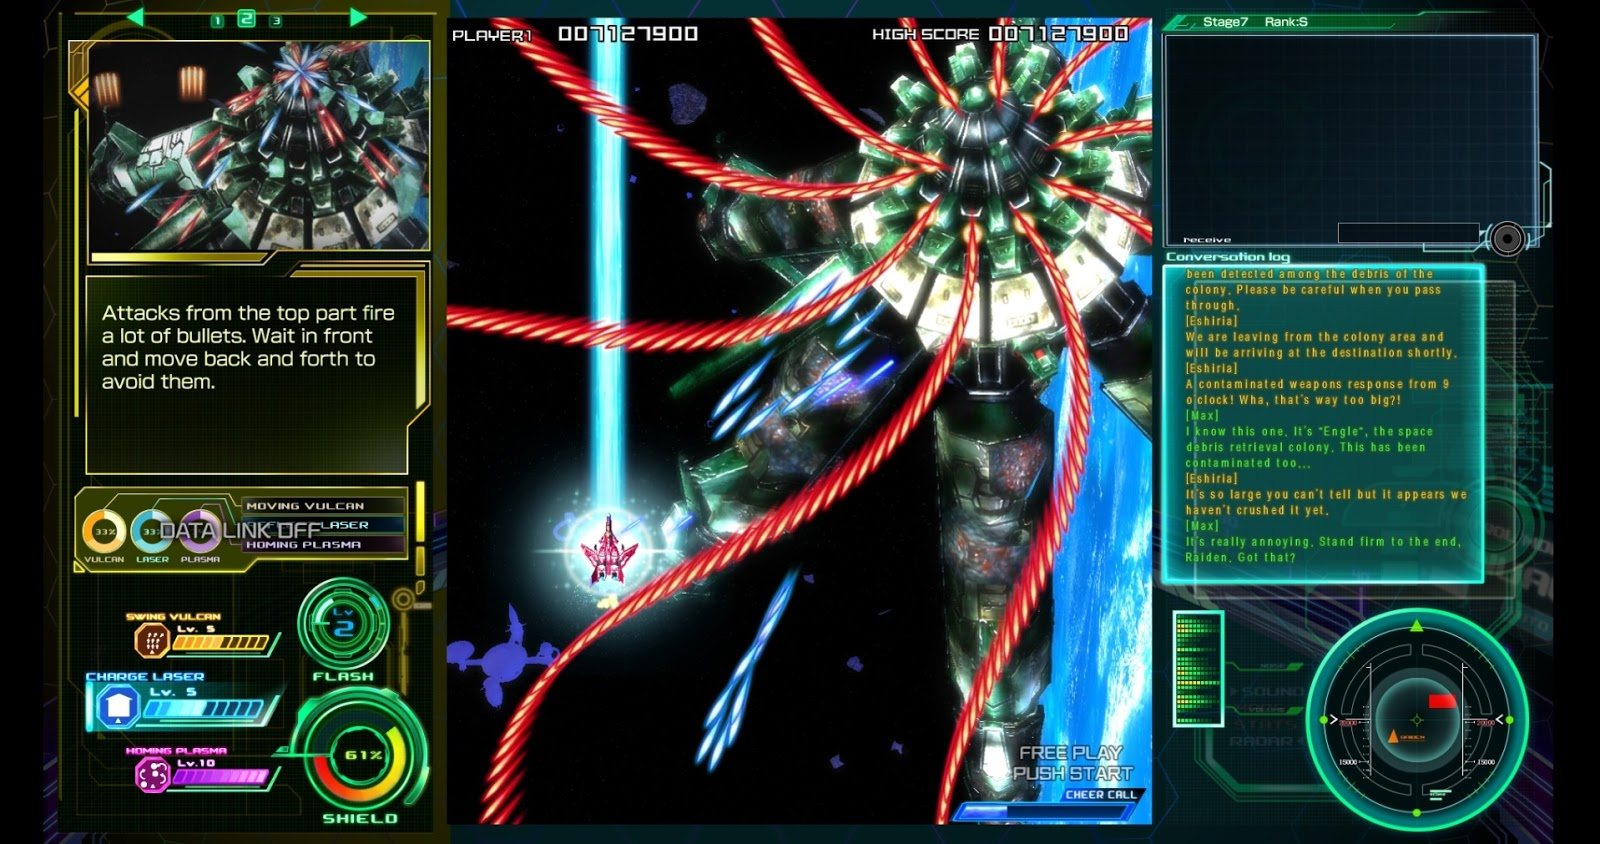 it looks easier than these bullet hell shmups in which bullets cover completely the screen right wrong because these bullets are fast like real fast